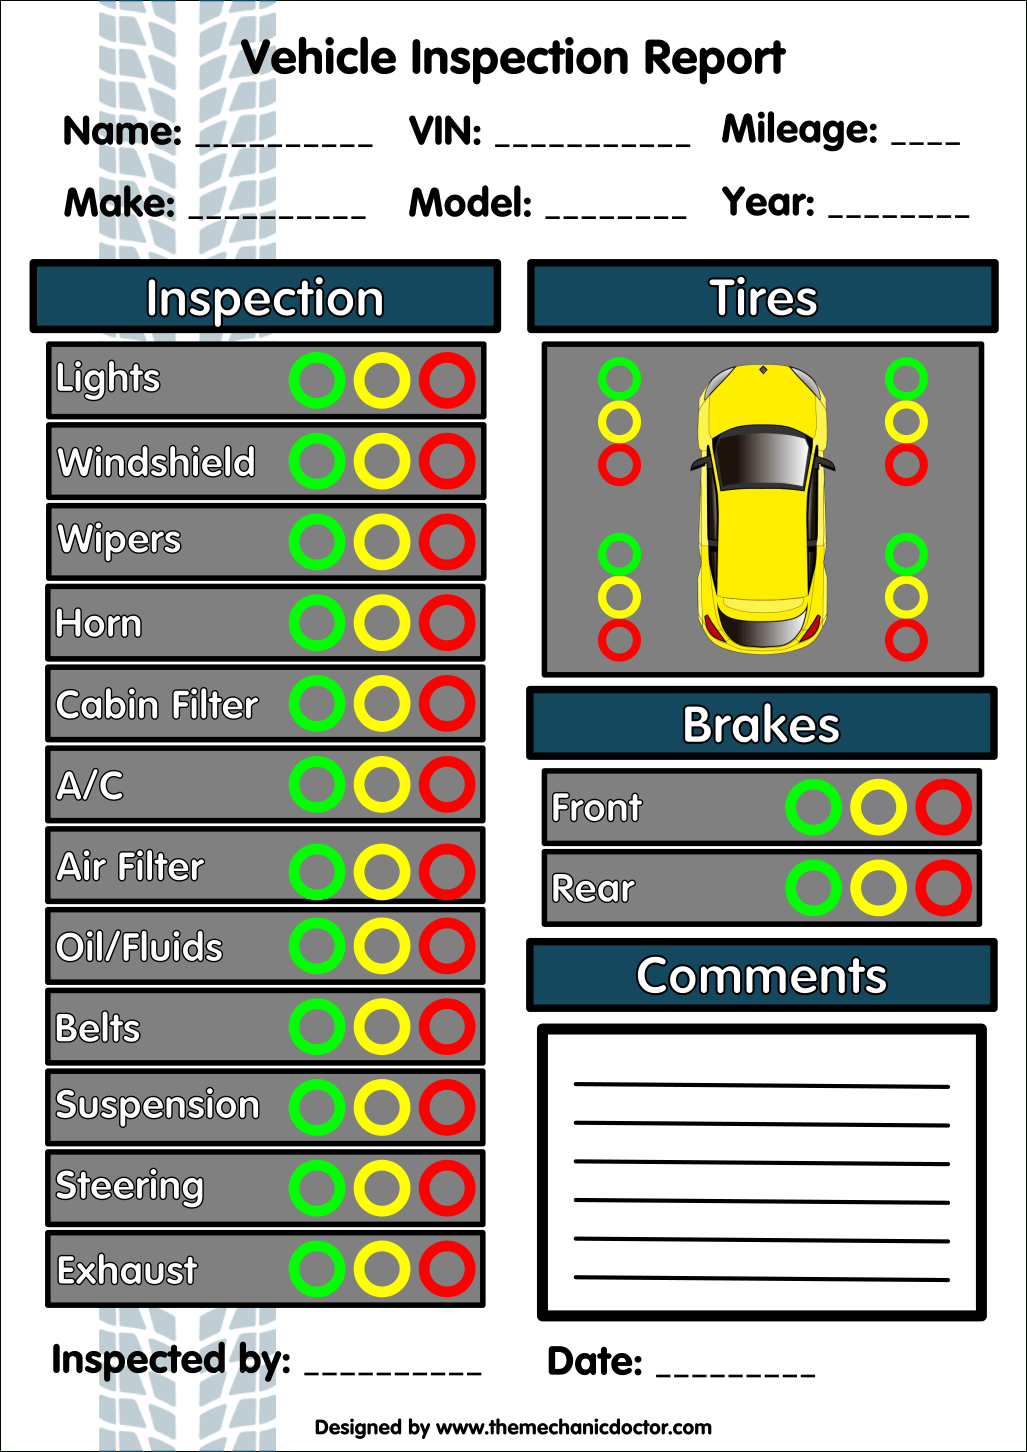 6 Free Vehicle Inspection Forms - Modern Looking Checklists For - Free Printable Vehicle Inspection Form